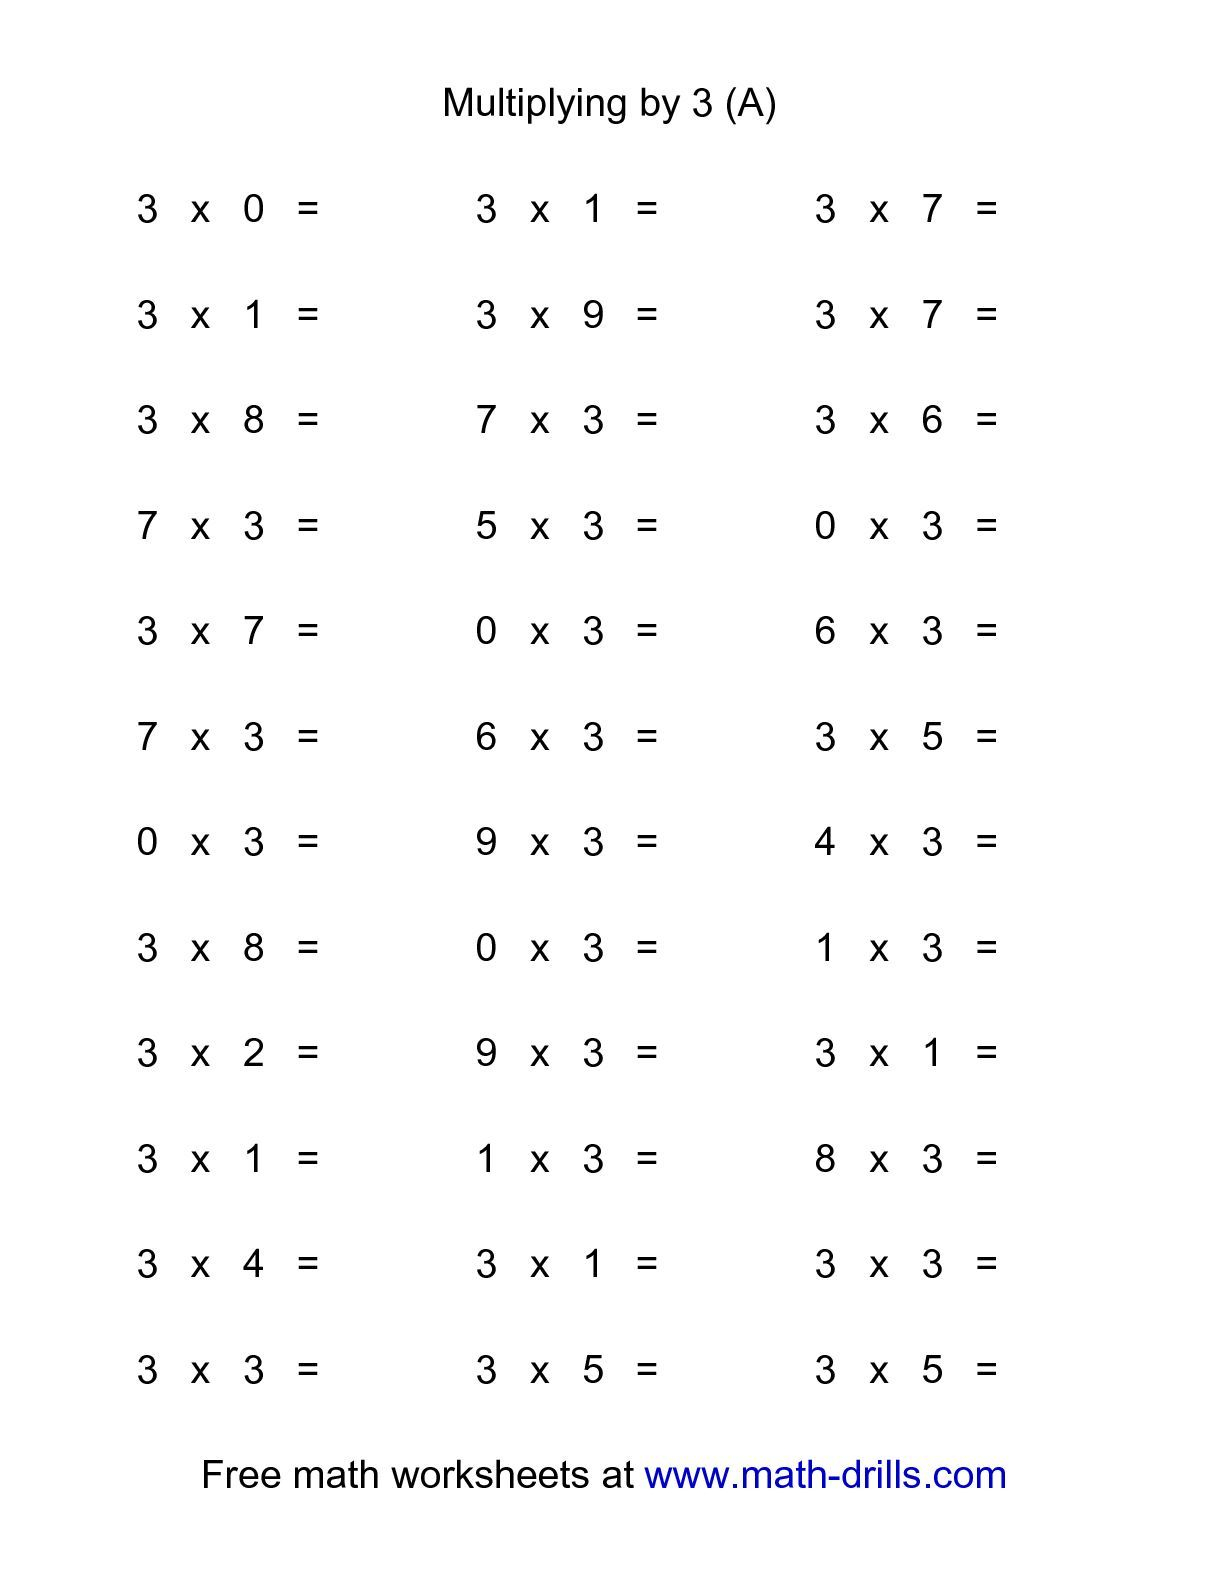 36 Horizontal Multiplication Facts Questions -- 30-9 (A